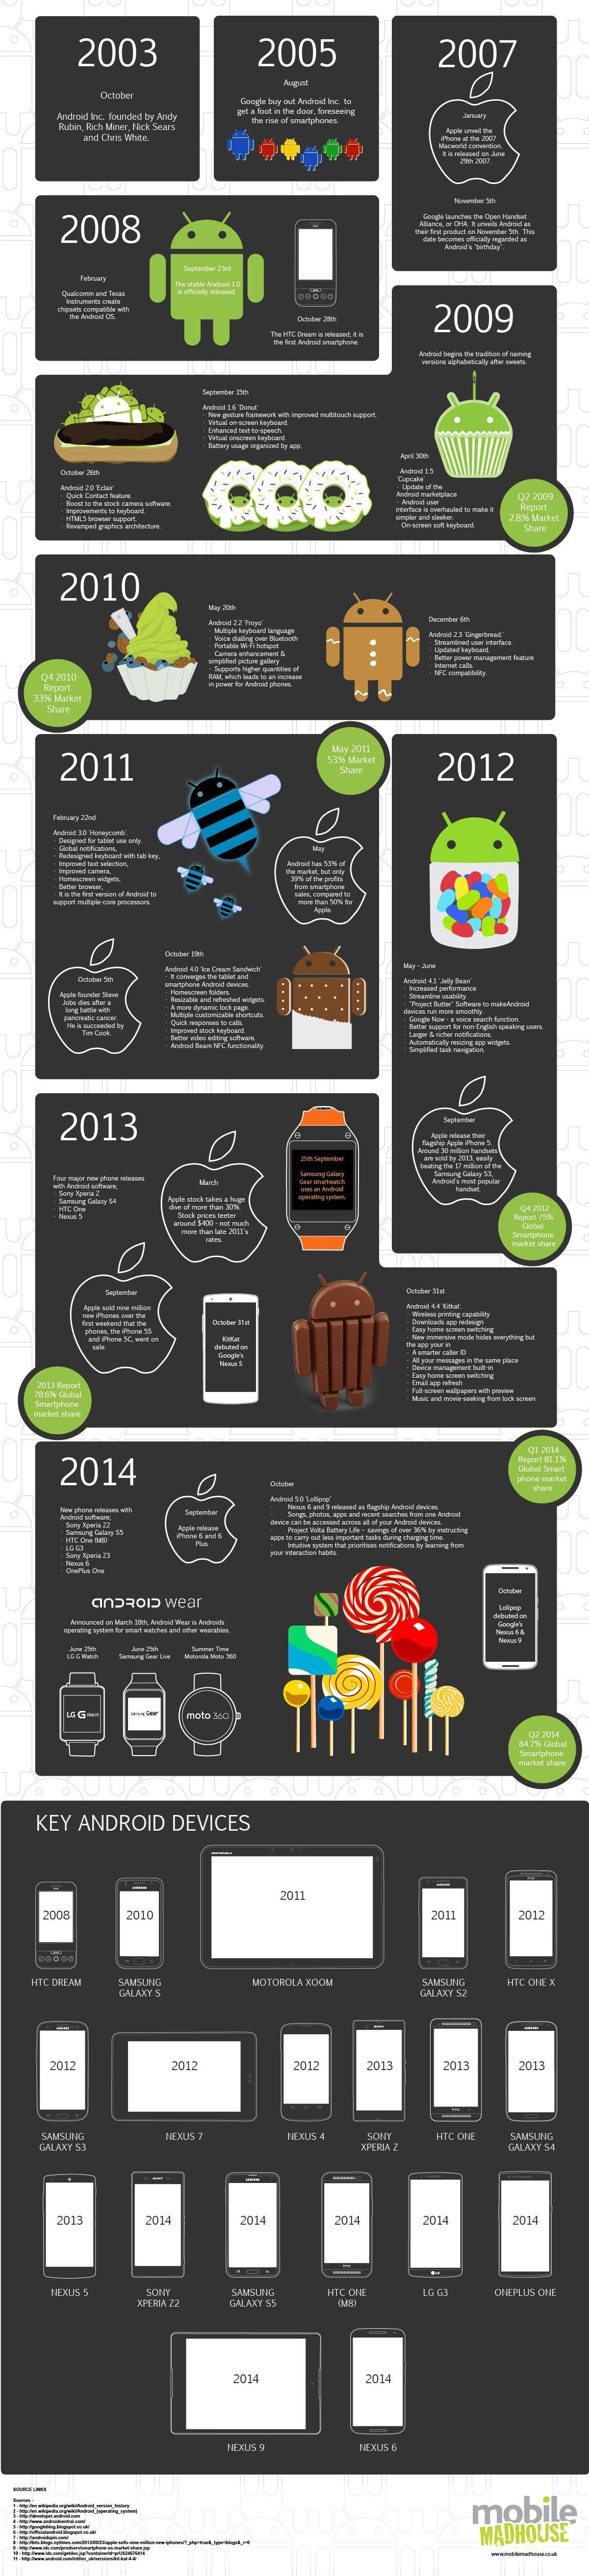 The sweet history of Android (Click the image for a larger view)